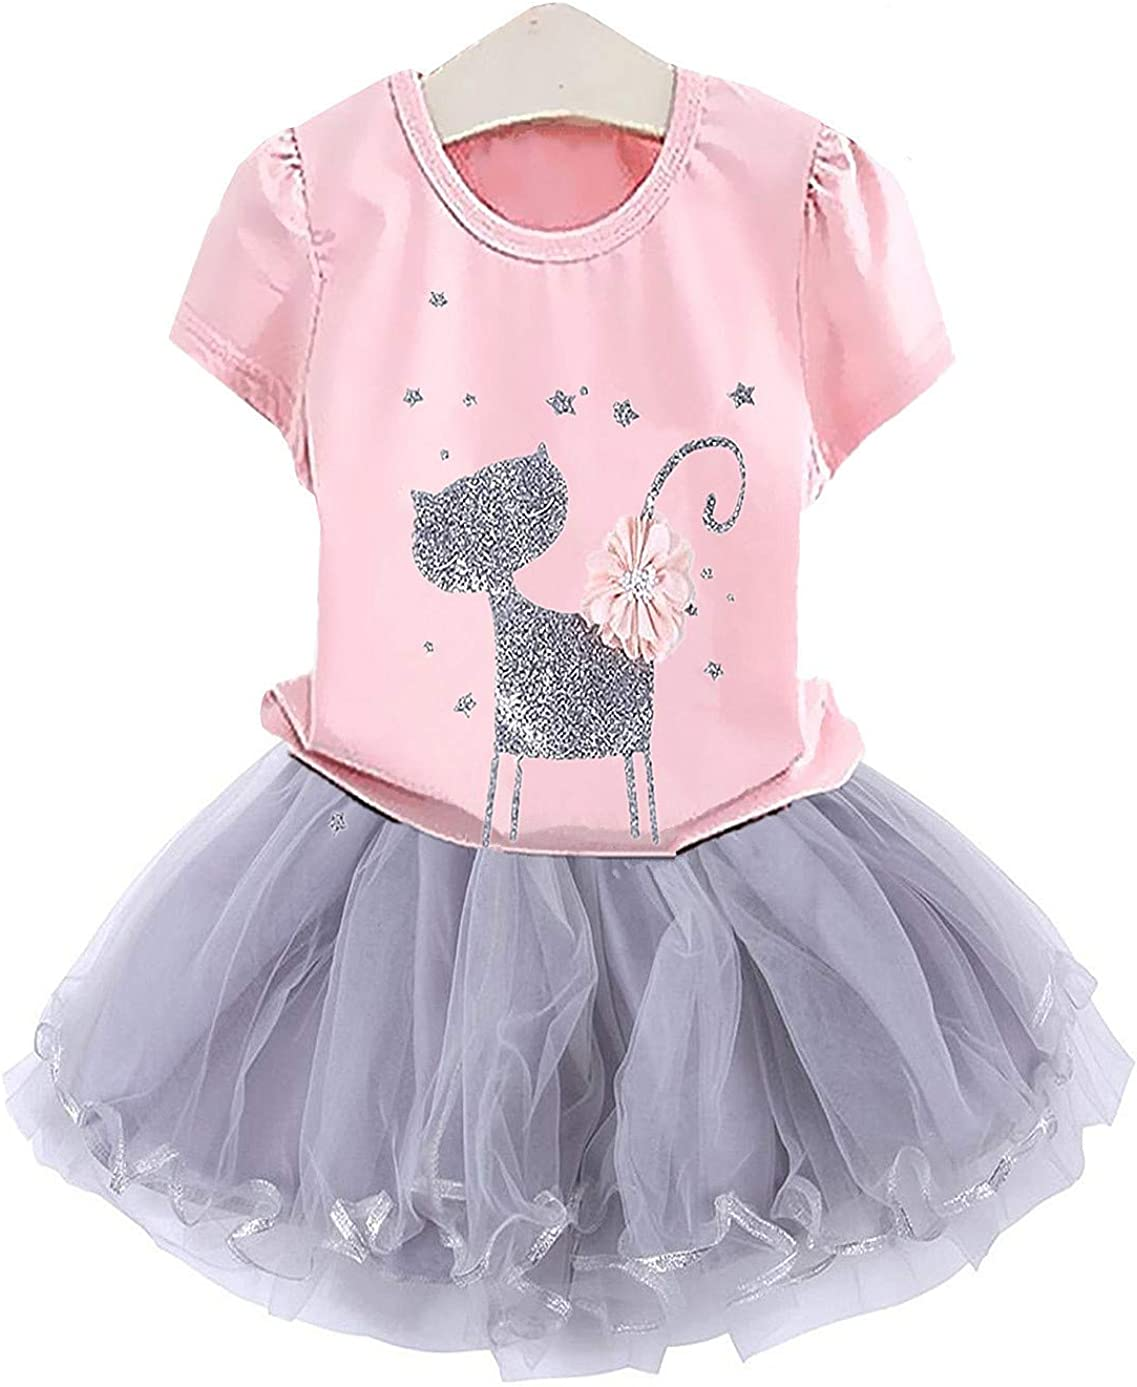 2Bunnies Girl Cat 3D Sequin Bow Sparkle Tutu Butterfly Tulle Skirt Dress Sets